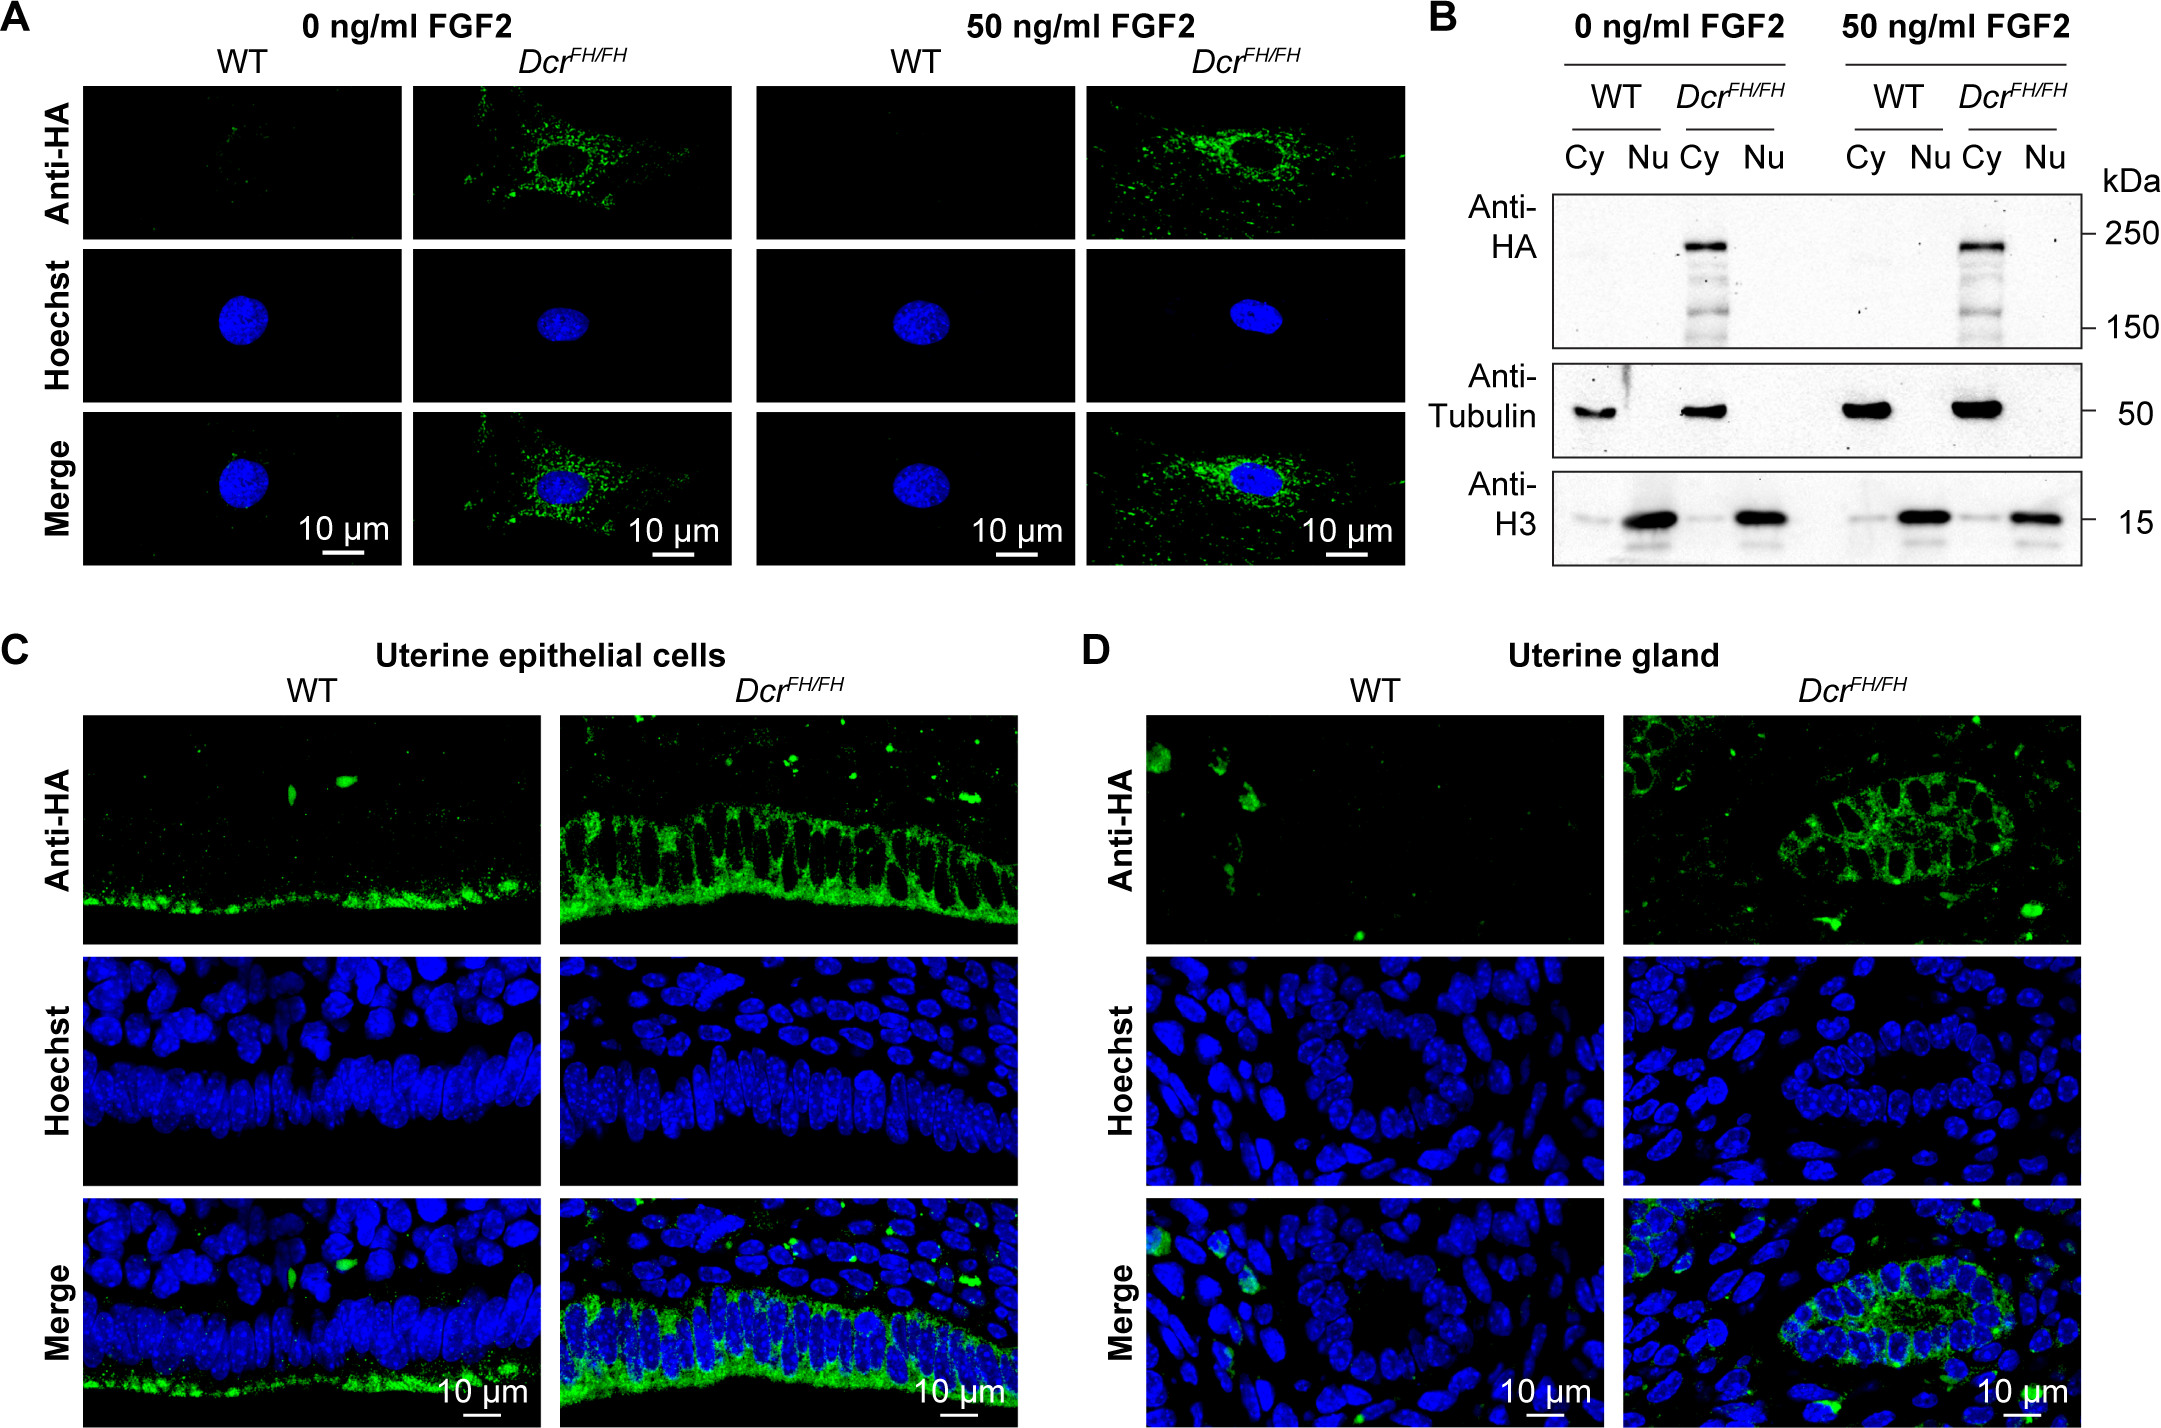 FGF signaling does not induce translocation of Dicer to the nucleus.